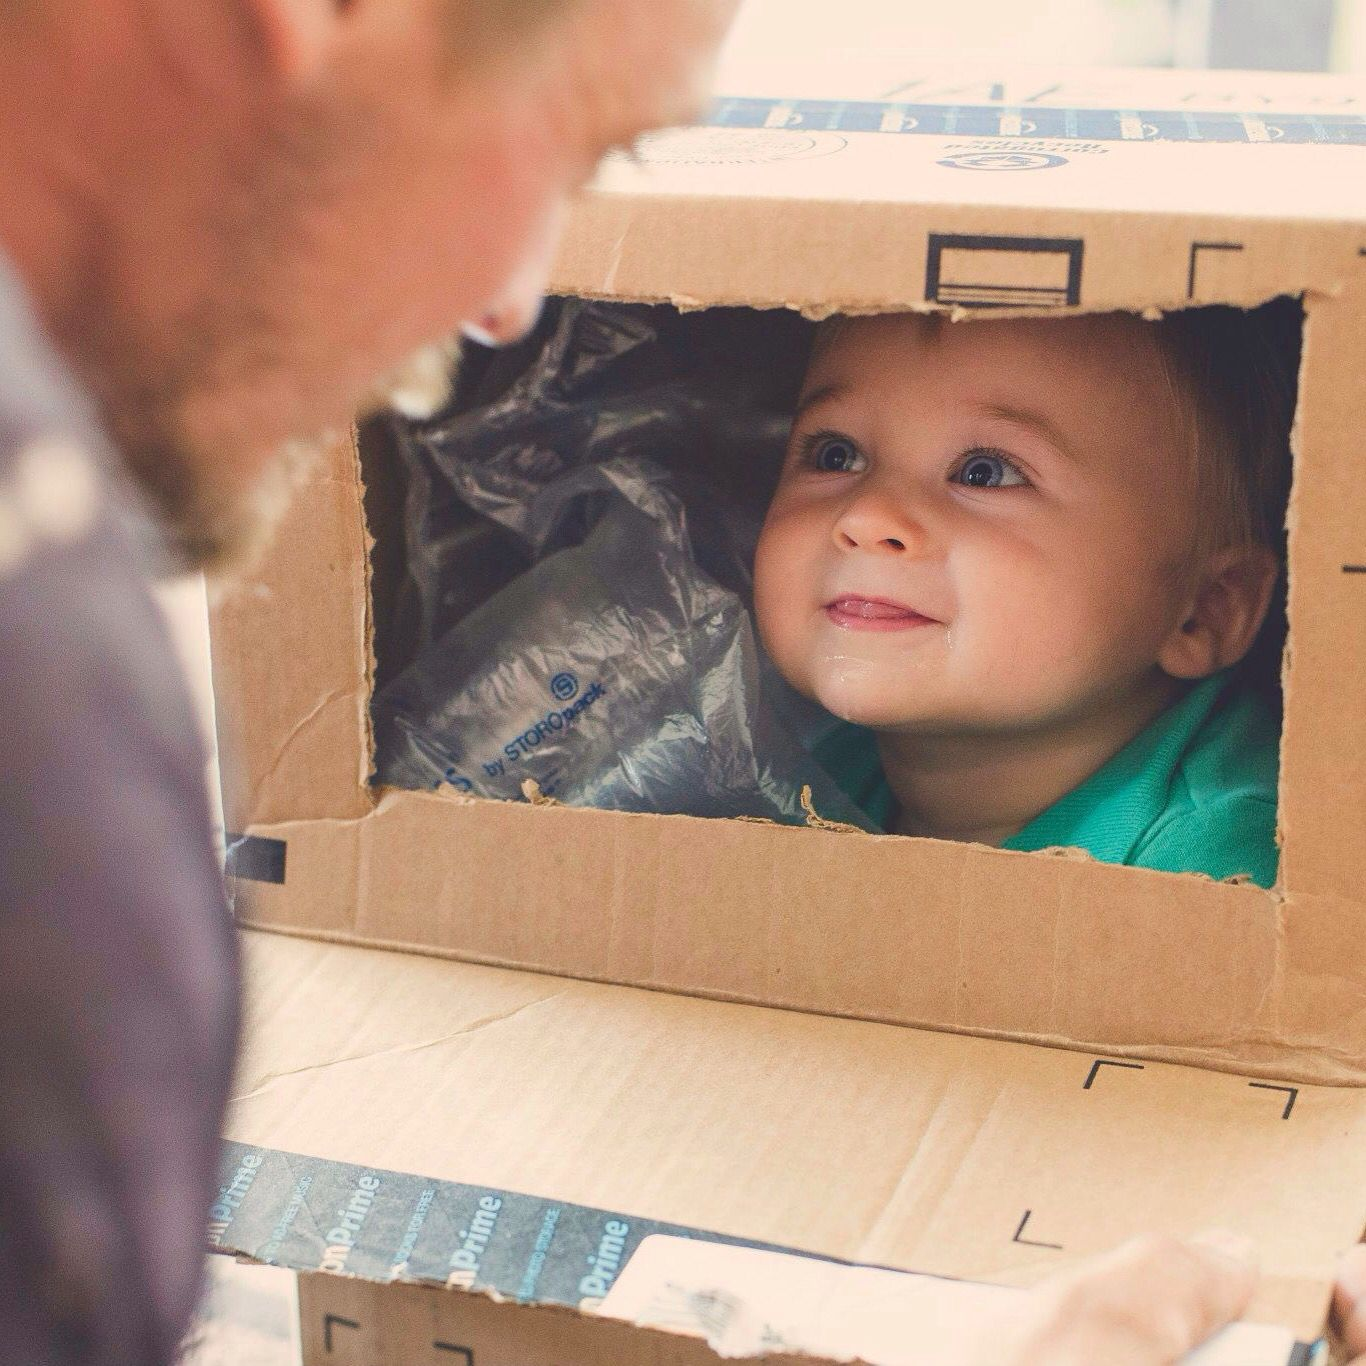 Ryan and daddy playing in boxes